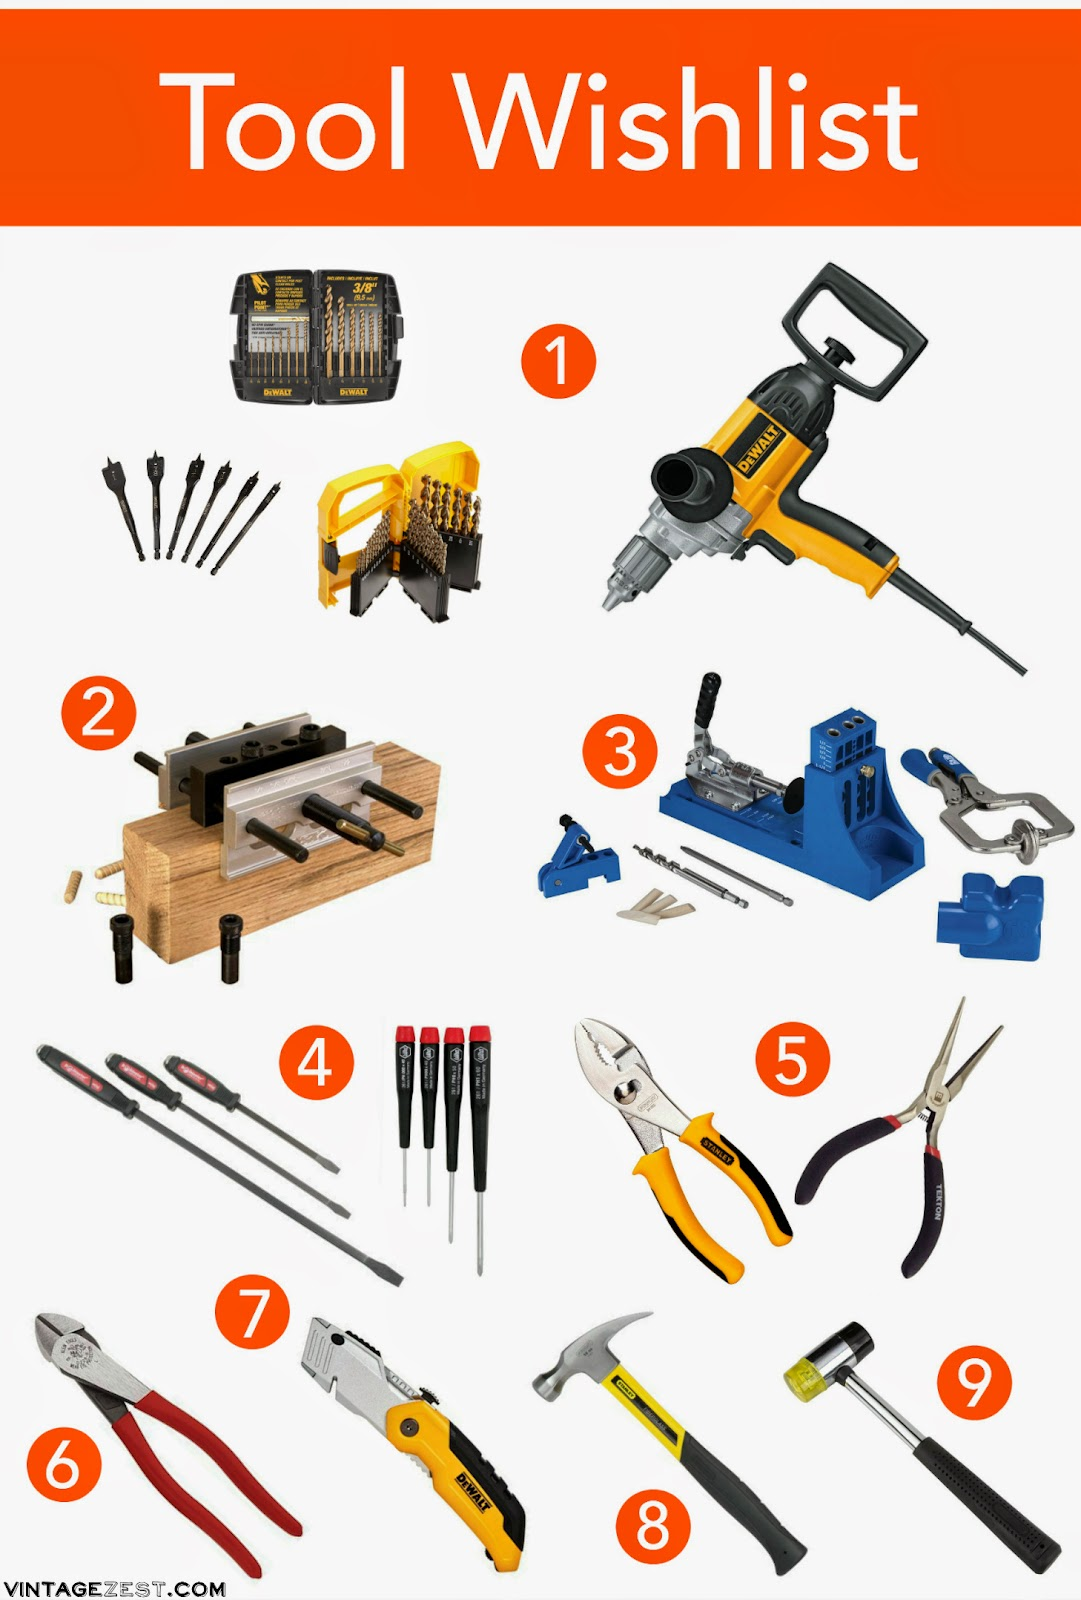 Fantastic Conclusion All These Tips And Instruction Will Make The Woodworking Projects And Plans For Beginners Fast To Complete Always Make Sure That You Have All The Essential Tools, Materials, Space Ready Keep The Instructions Of